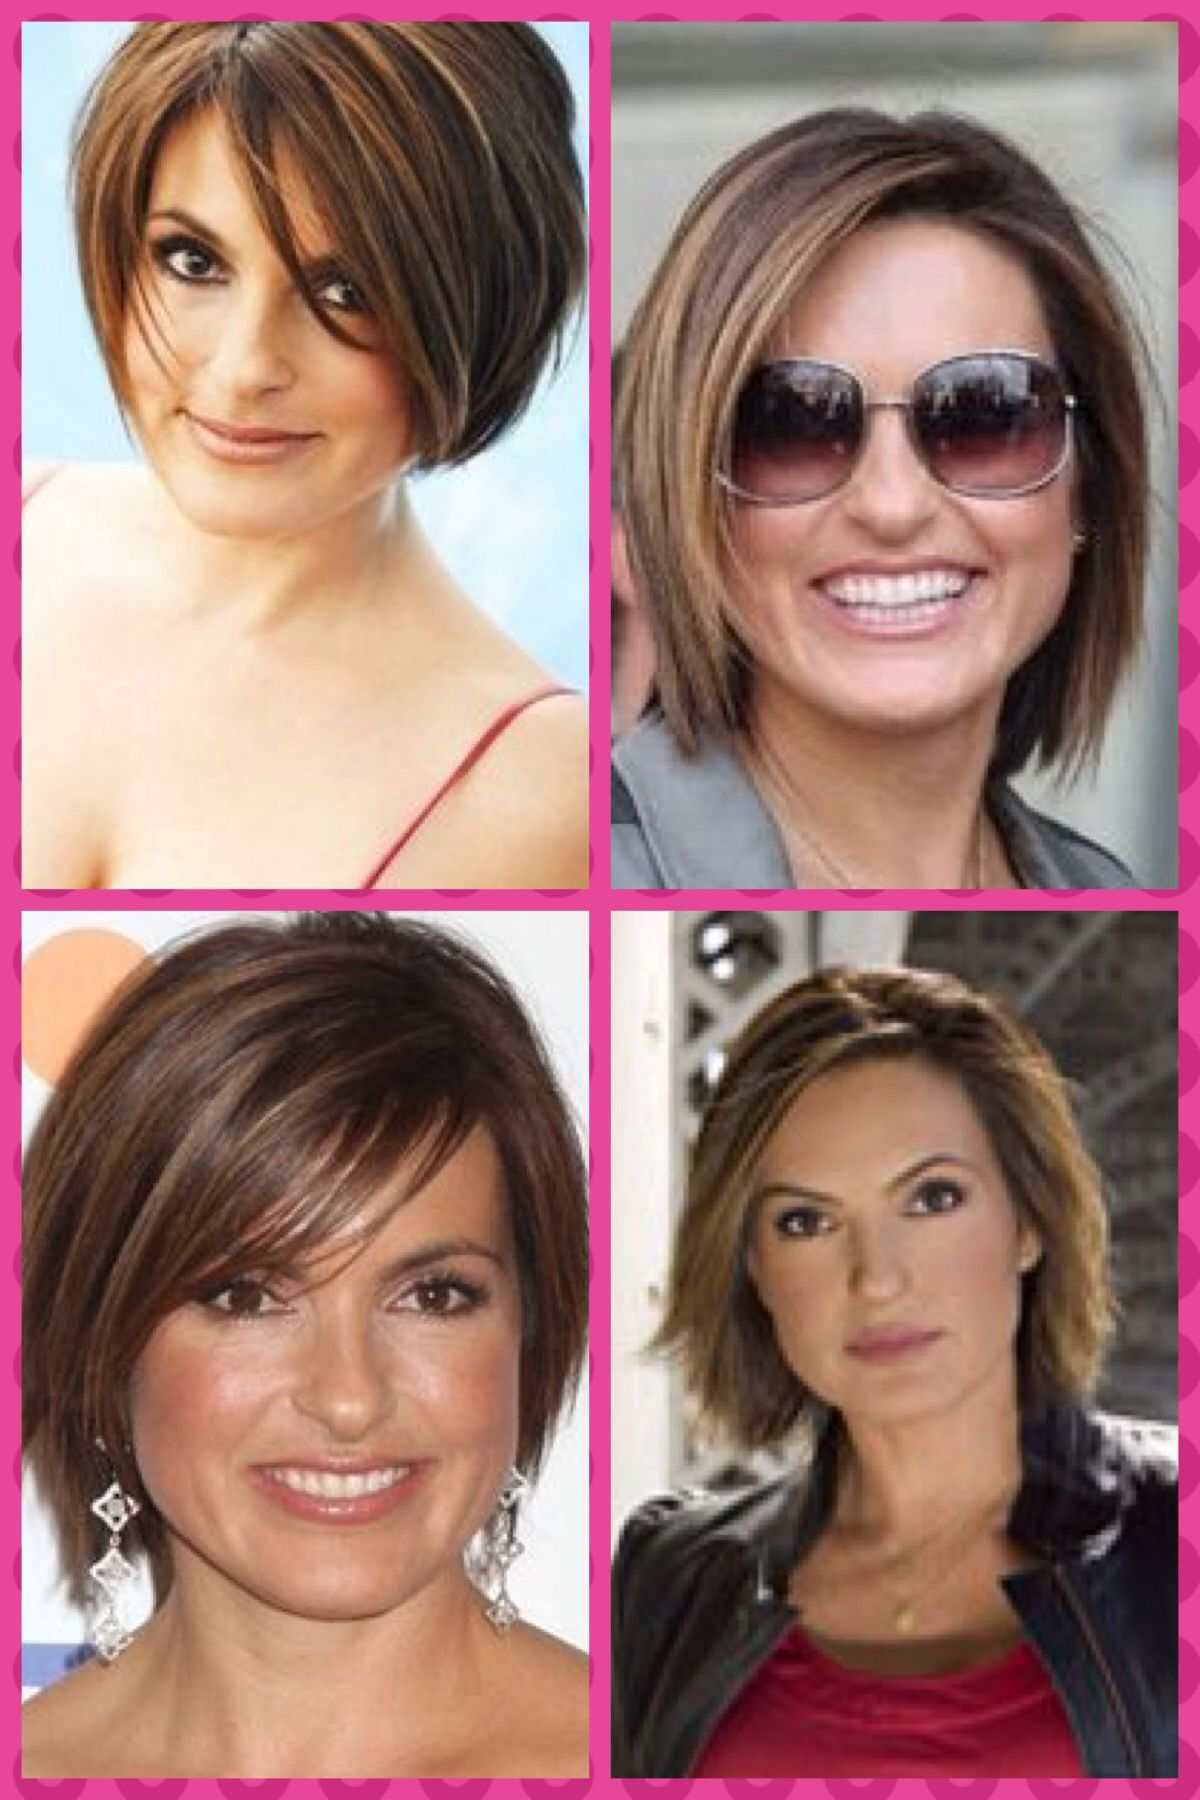 liking the olivia benson haircuts | i'd do this with my hair